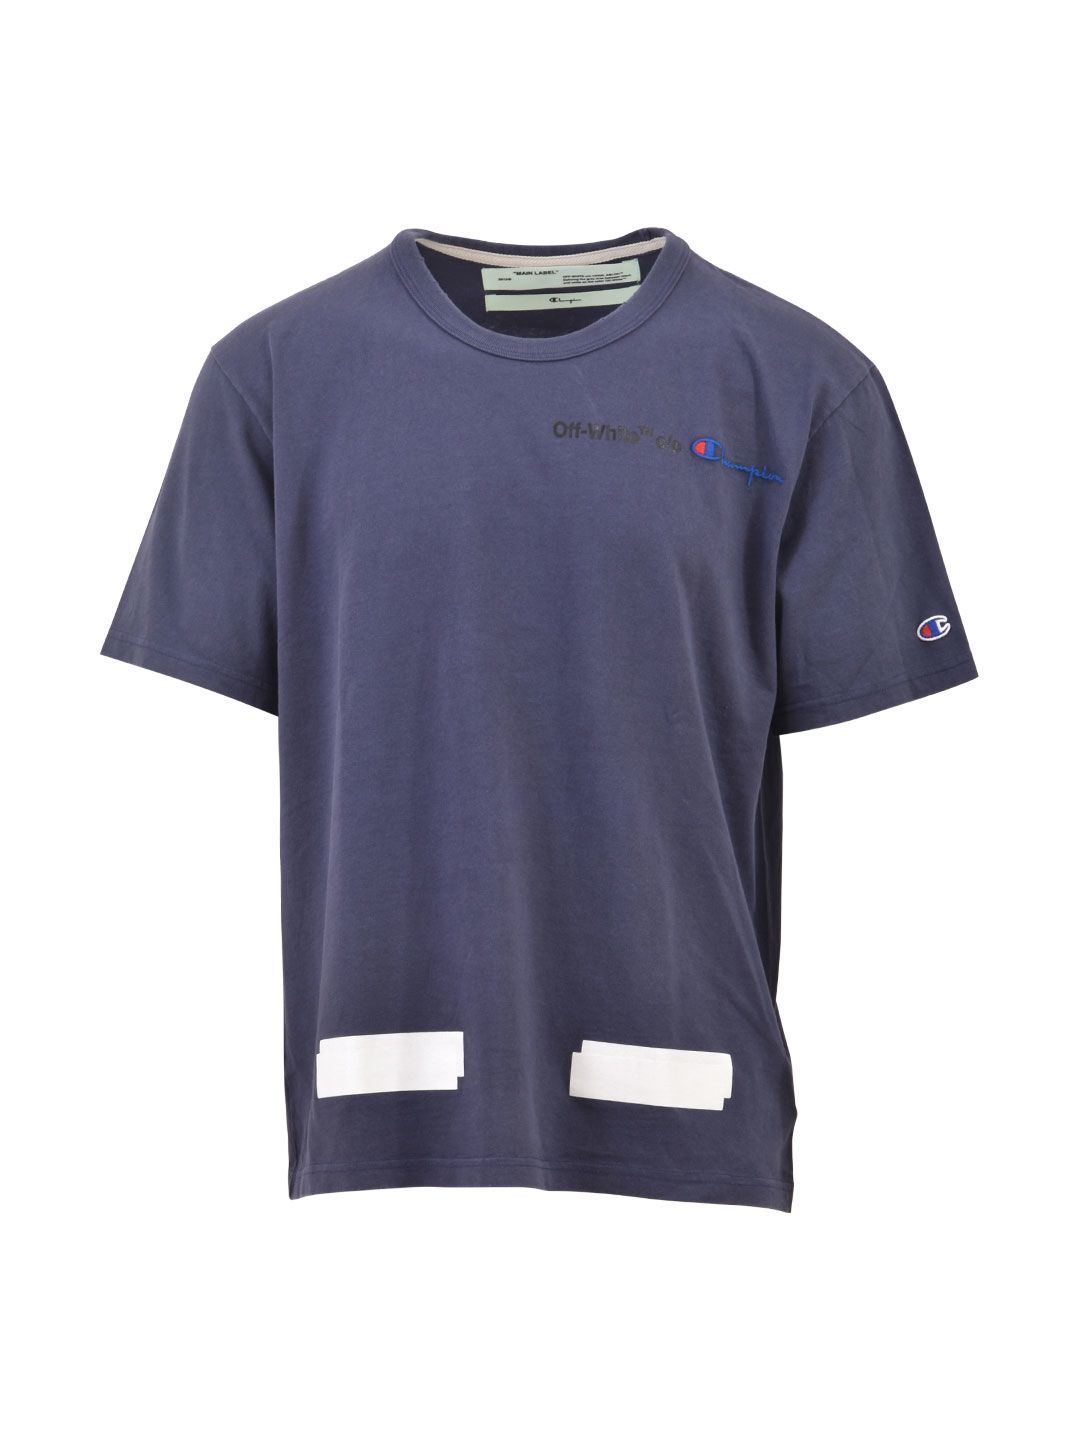 Off White Off Whit X Champion Tee In Blue Modesens Champion Tees Long Sleeve Tshirt Men Off White